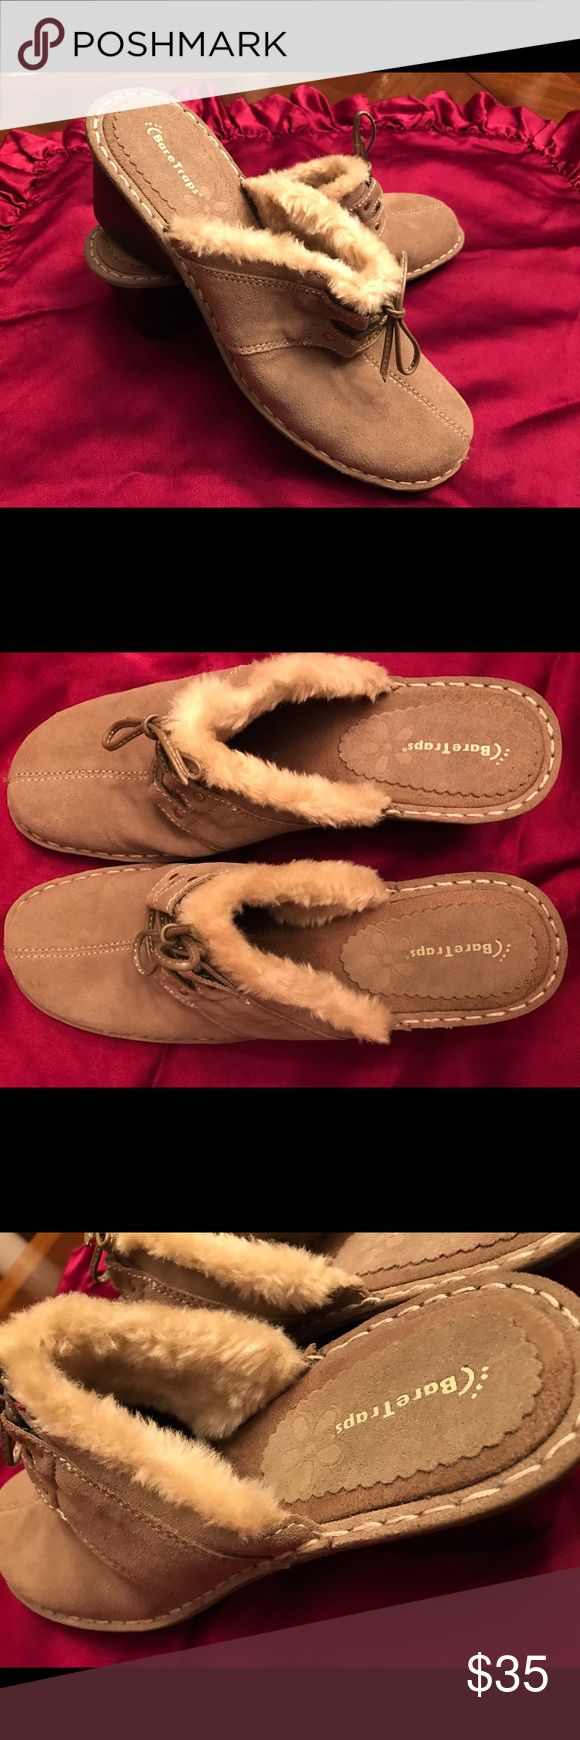 BARE TRAPS CLOGS/size10 Classic Bare Trap women's clogs/decoy faux fur trim/leather upper. Clogs are new with tags/never used and have been properly closet stored. Excellent condition/clean and smoke free. BARE TRAPS Shoes Mules & Clogs